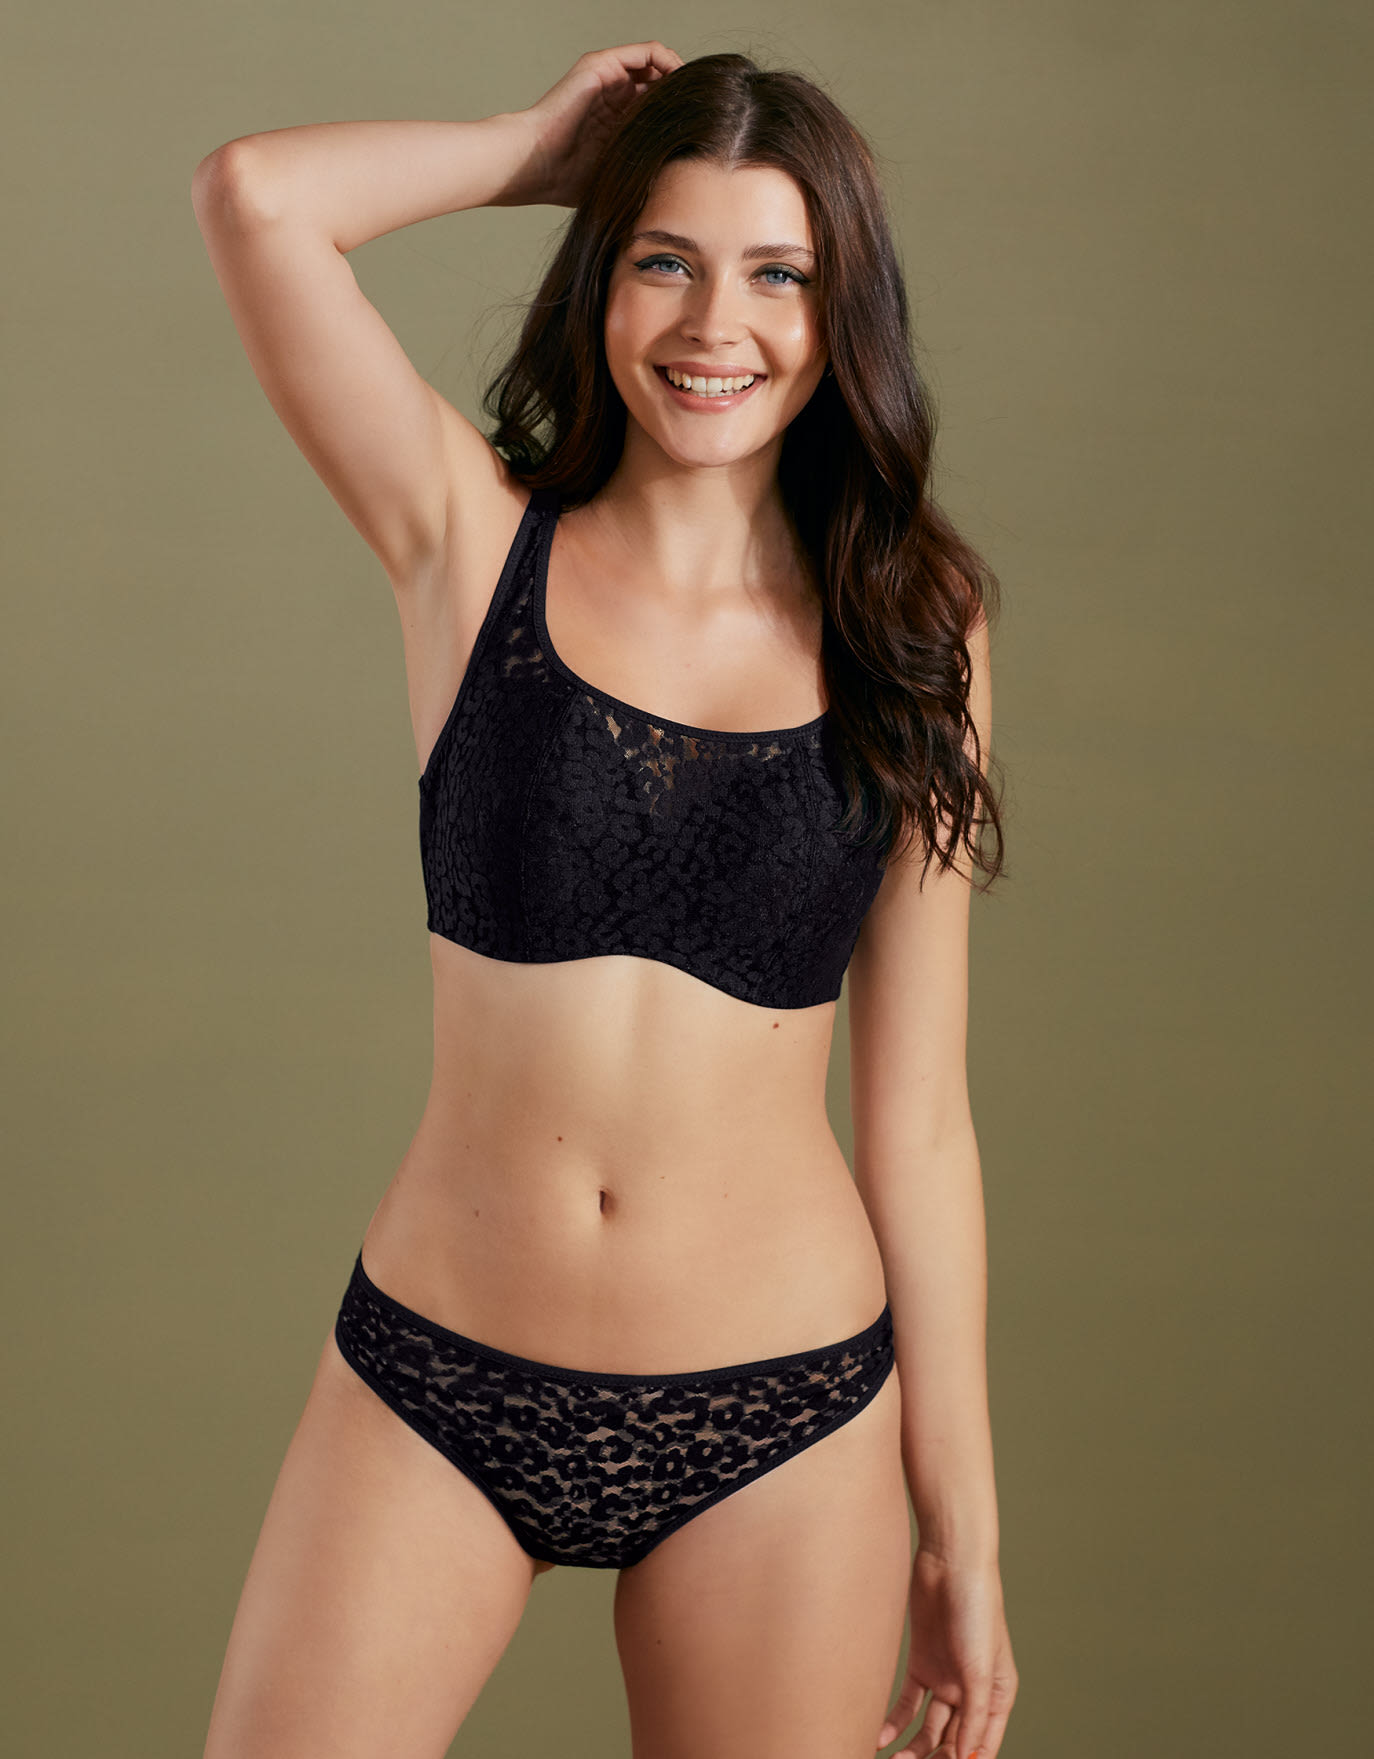 14bc86cd0dc Cleo Bras and Lingerie in a D-J Cup